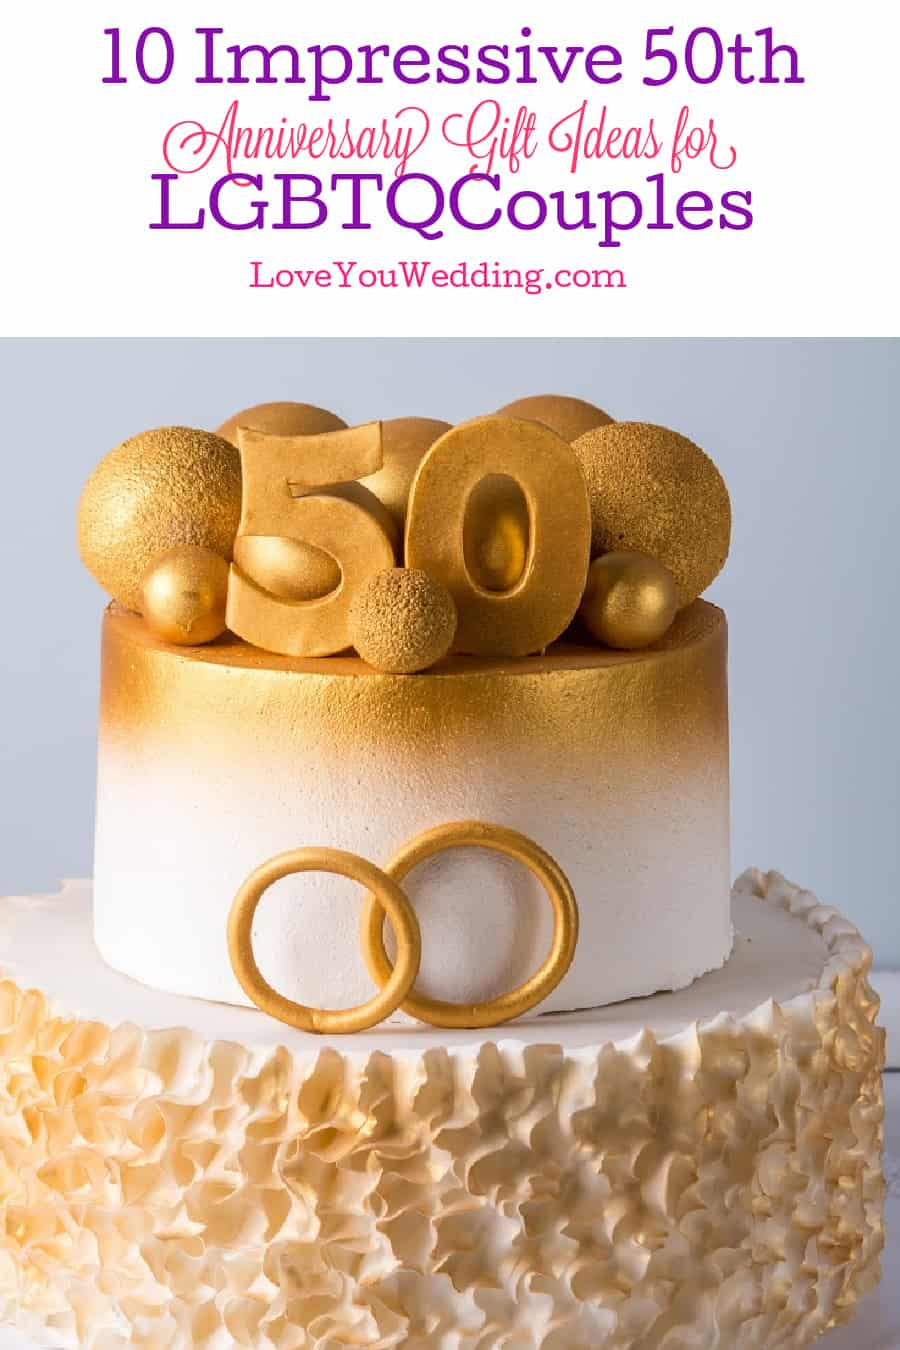 Looking for some unique and impressive 50th Anniversary gifts for gay and lesbian couples? Check out 10 that are sure to touch their hearts!